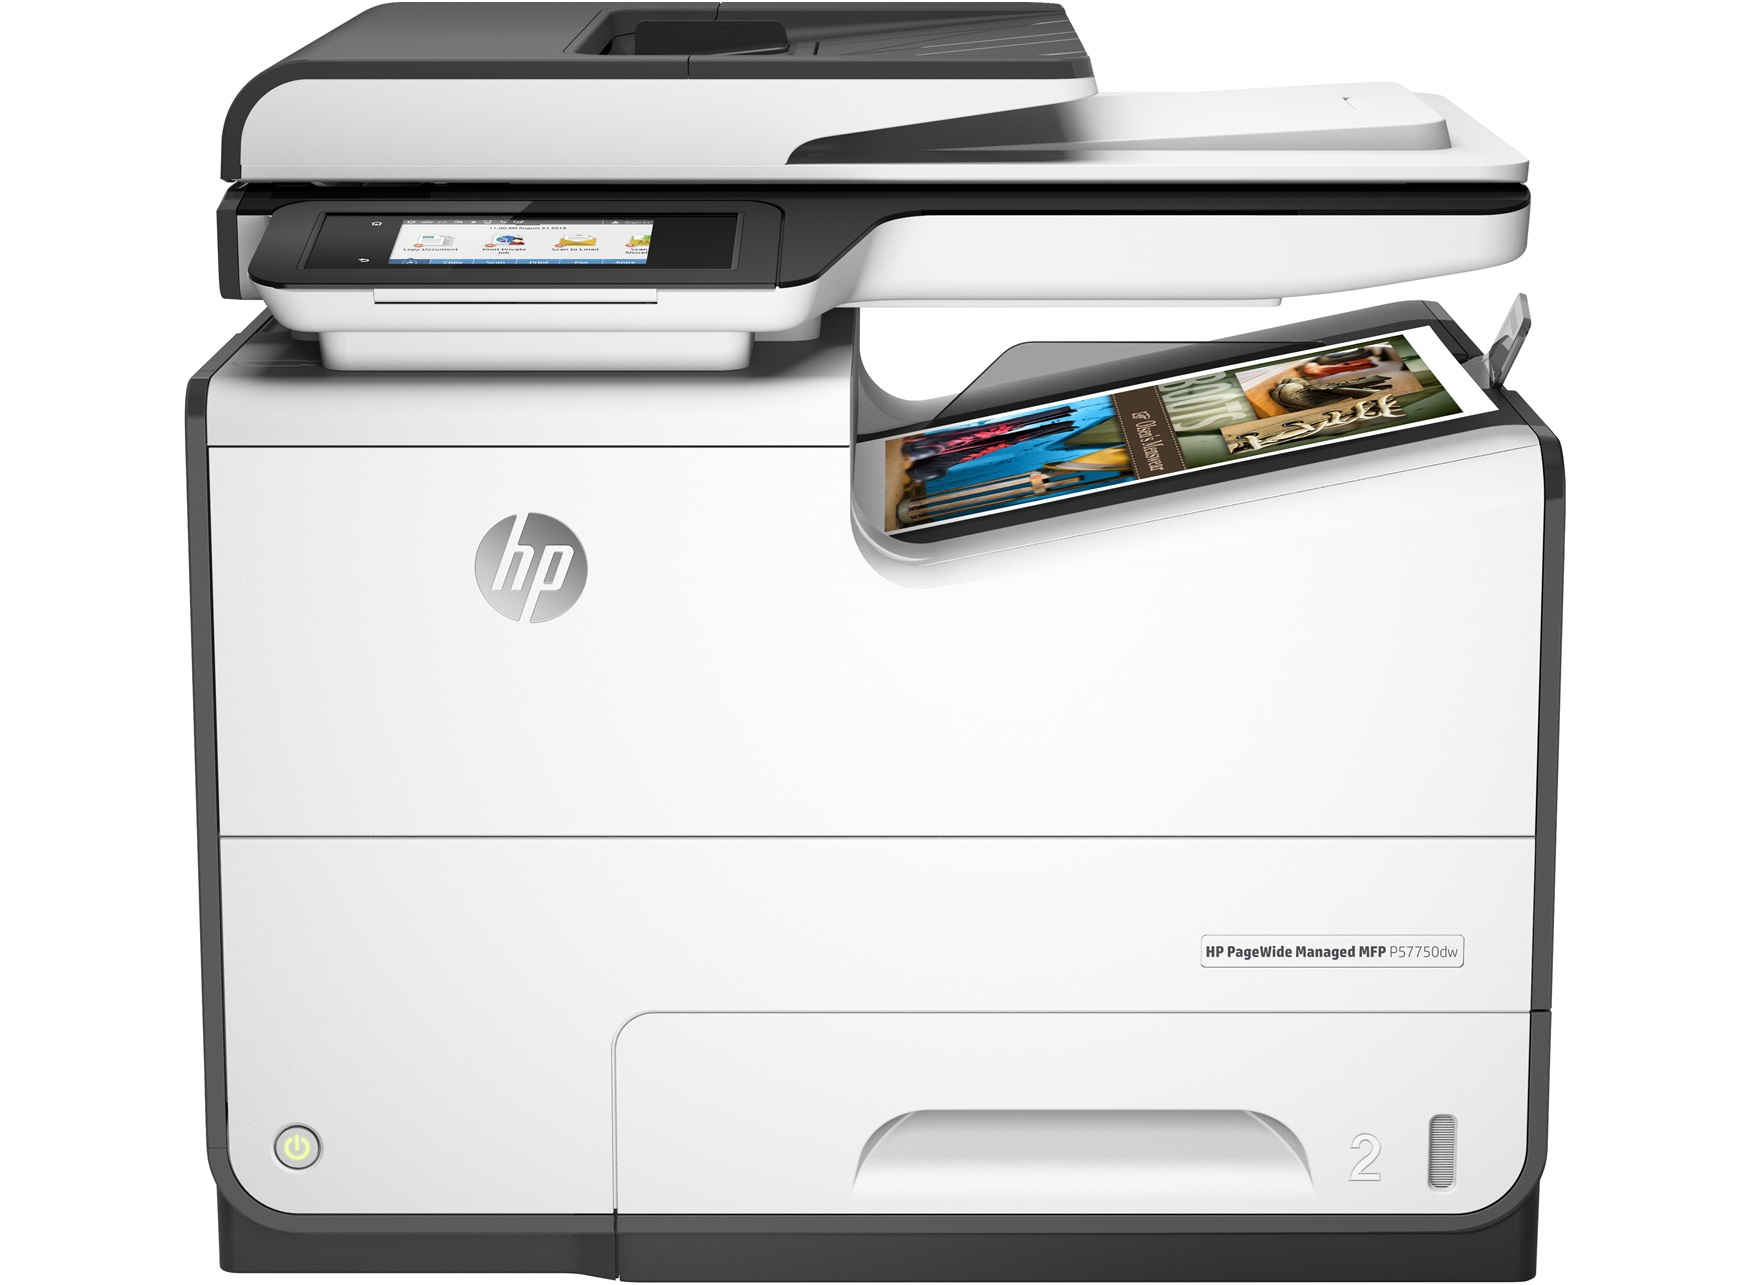 Hp consermer products business organization distributing p